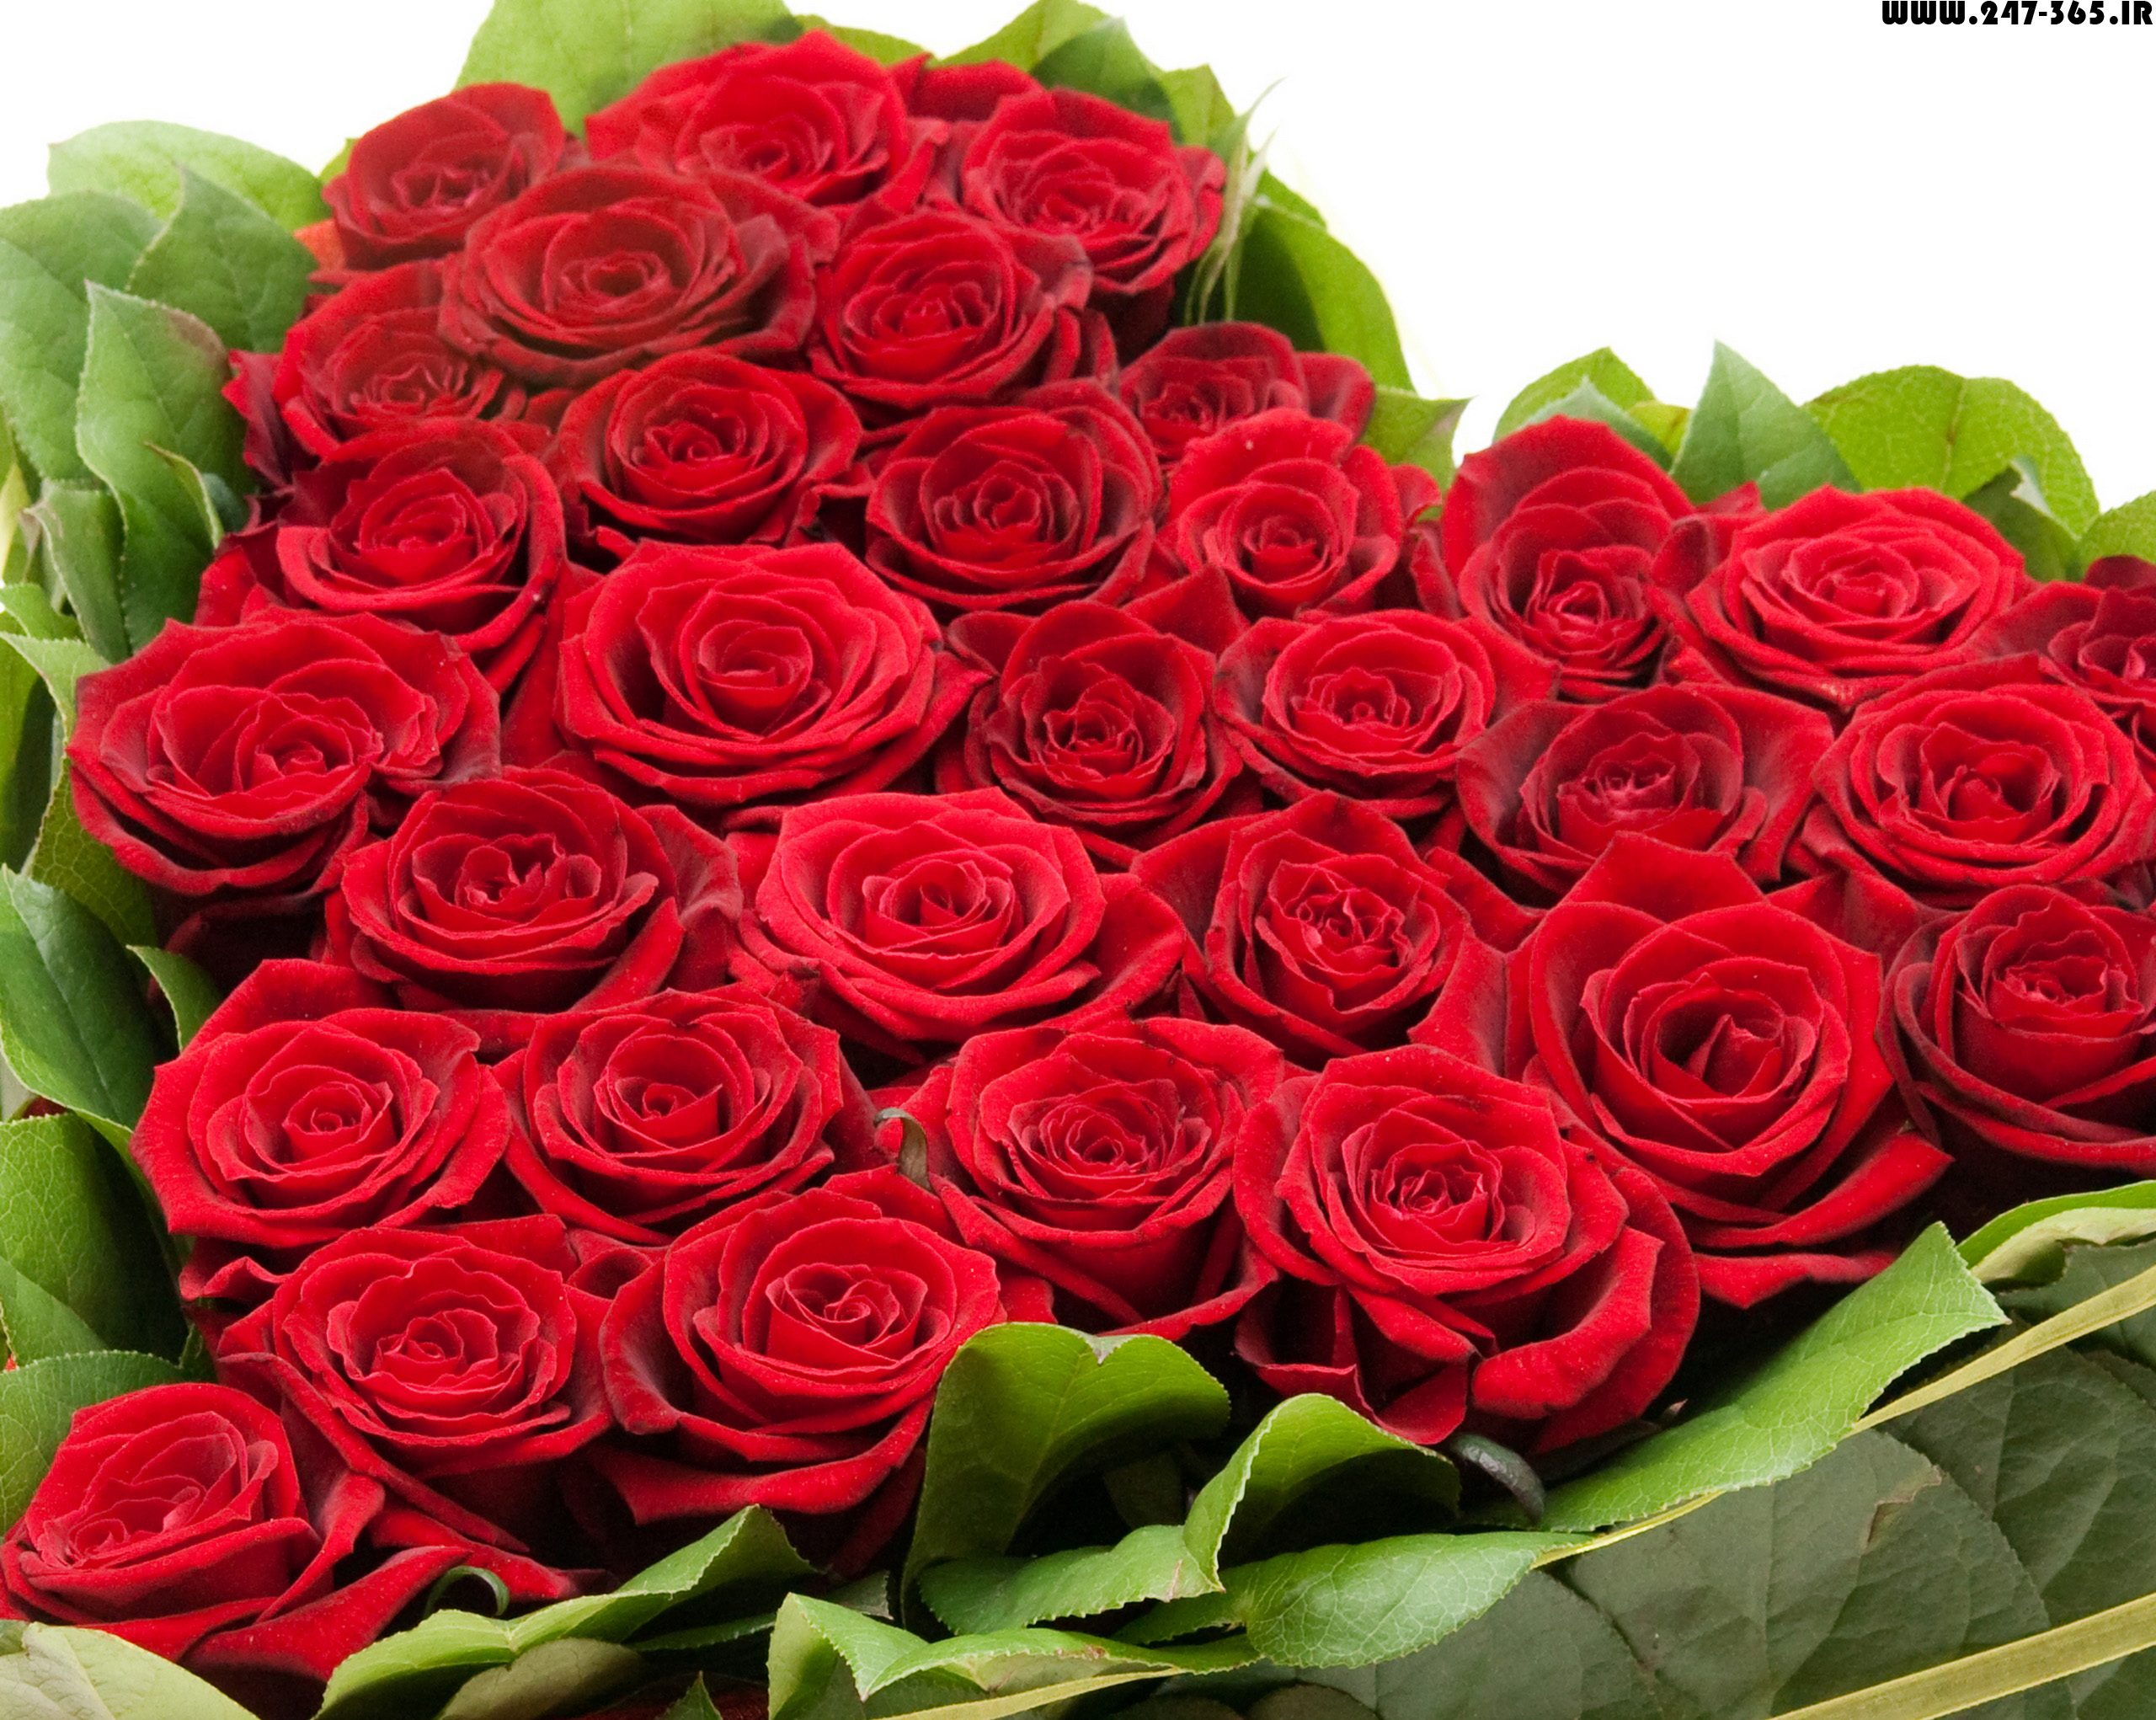 http://dl.247-365.ir/pic/gol/red_rose_4/Red_Rose_4_09.jpg